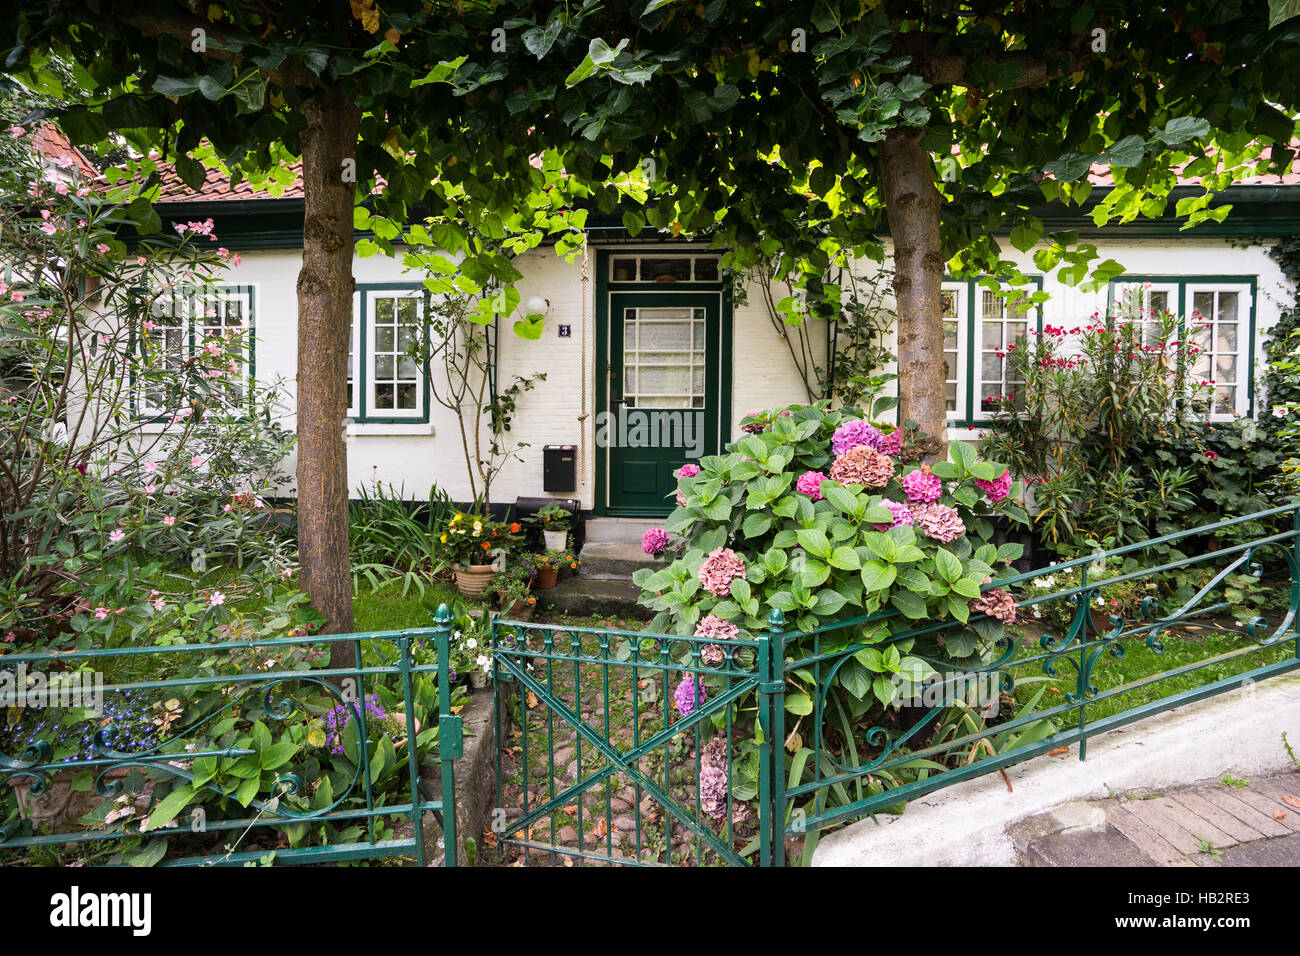 treppen viertel in blankenese hamburg stockfoto bild 127296123 alamy. Black Bedroom Furniture Sets. Home Design Ideas